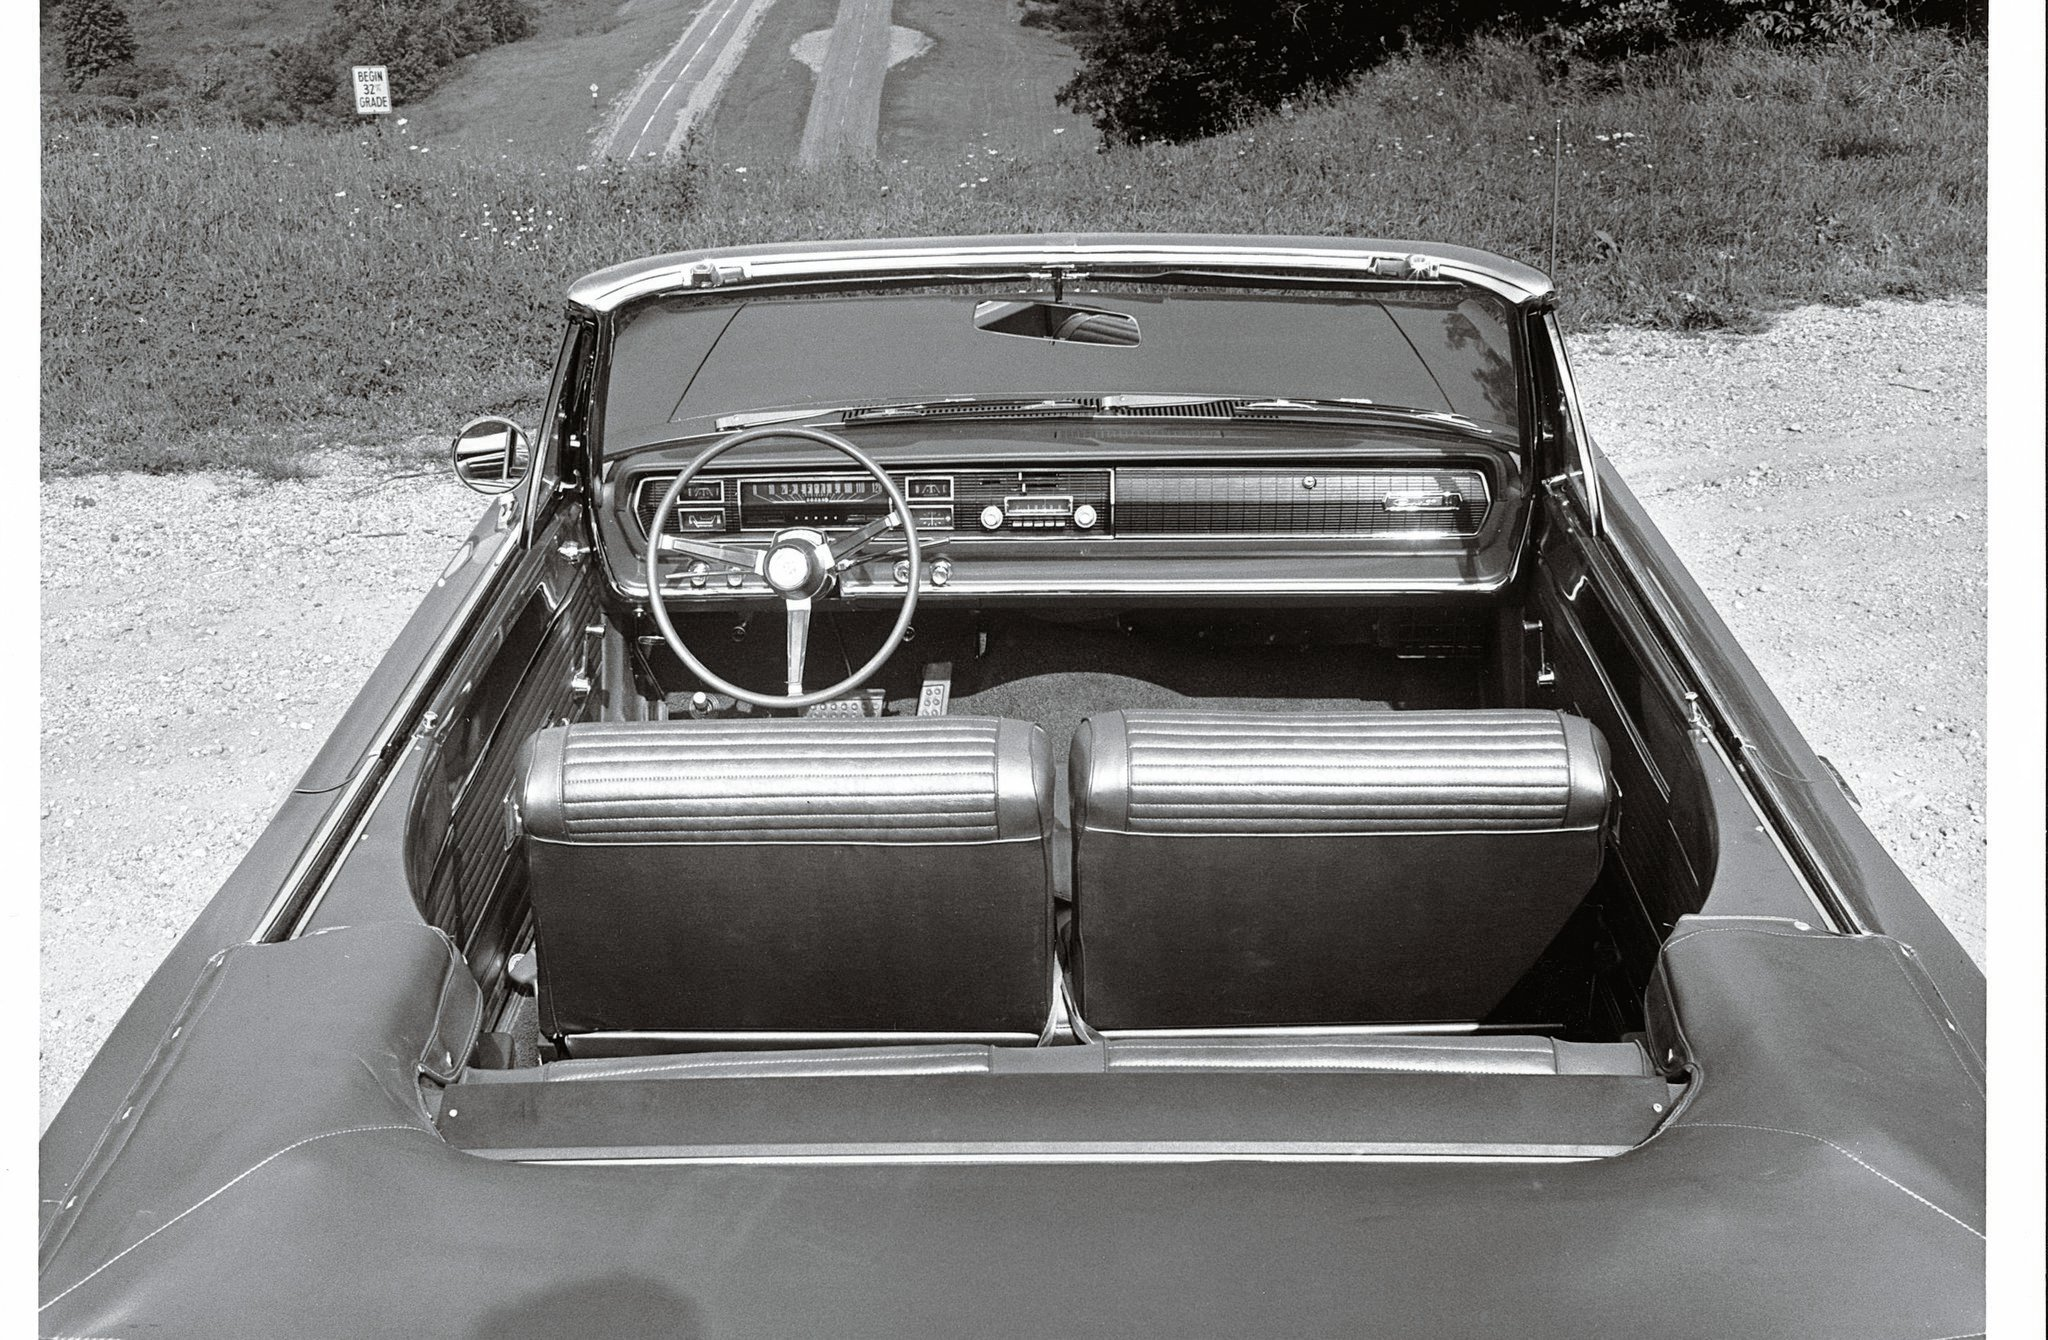 "Dahlquist appreciated the new interior layout of the '66 Coronet. ""Seating position had improved markedly. In the '65, wheel position had always felt a bit too high, but in the '66 it was fine."" He also liked the new dash layout, but said he'd prefer the TorqueFlite's shift lever on the floor."